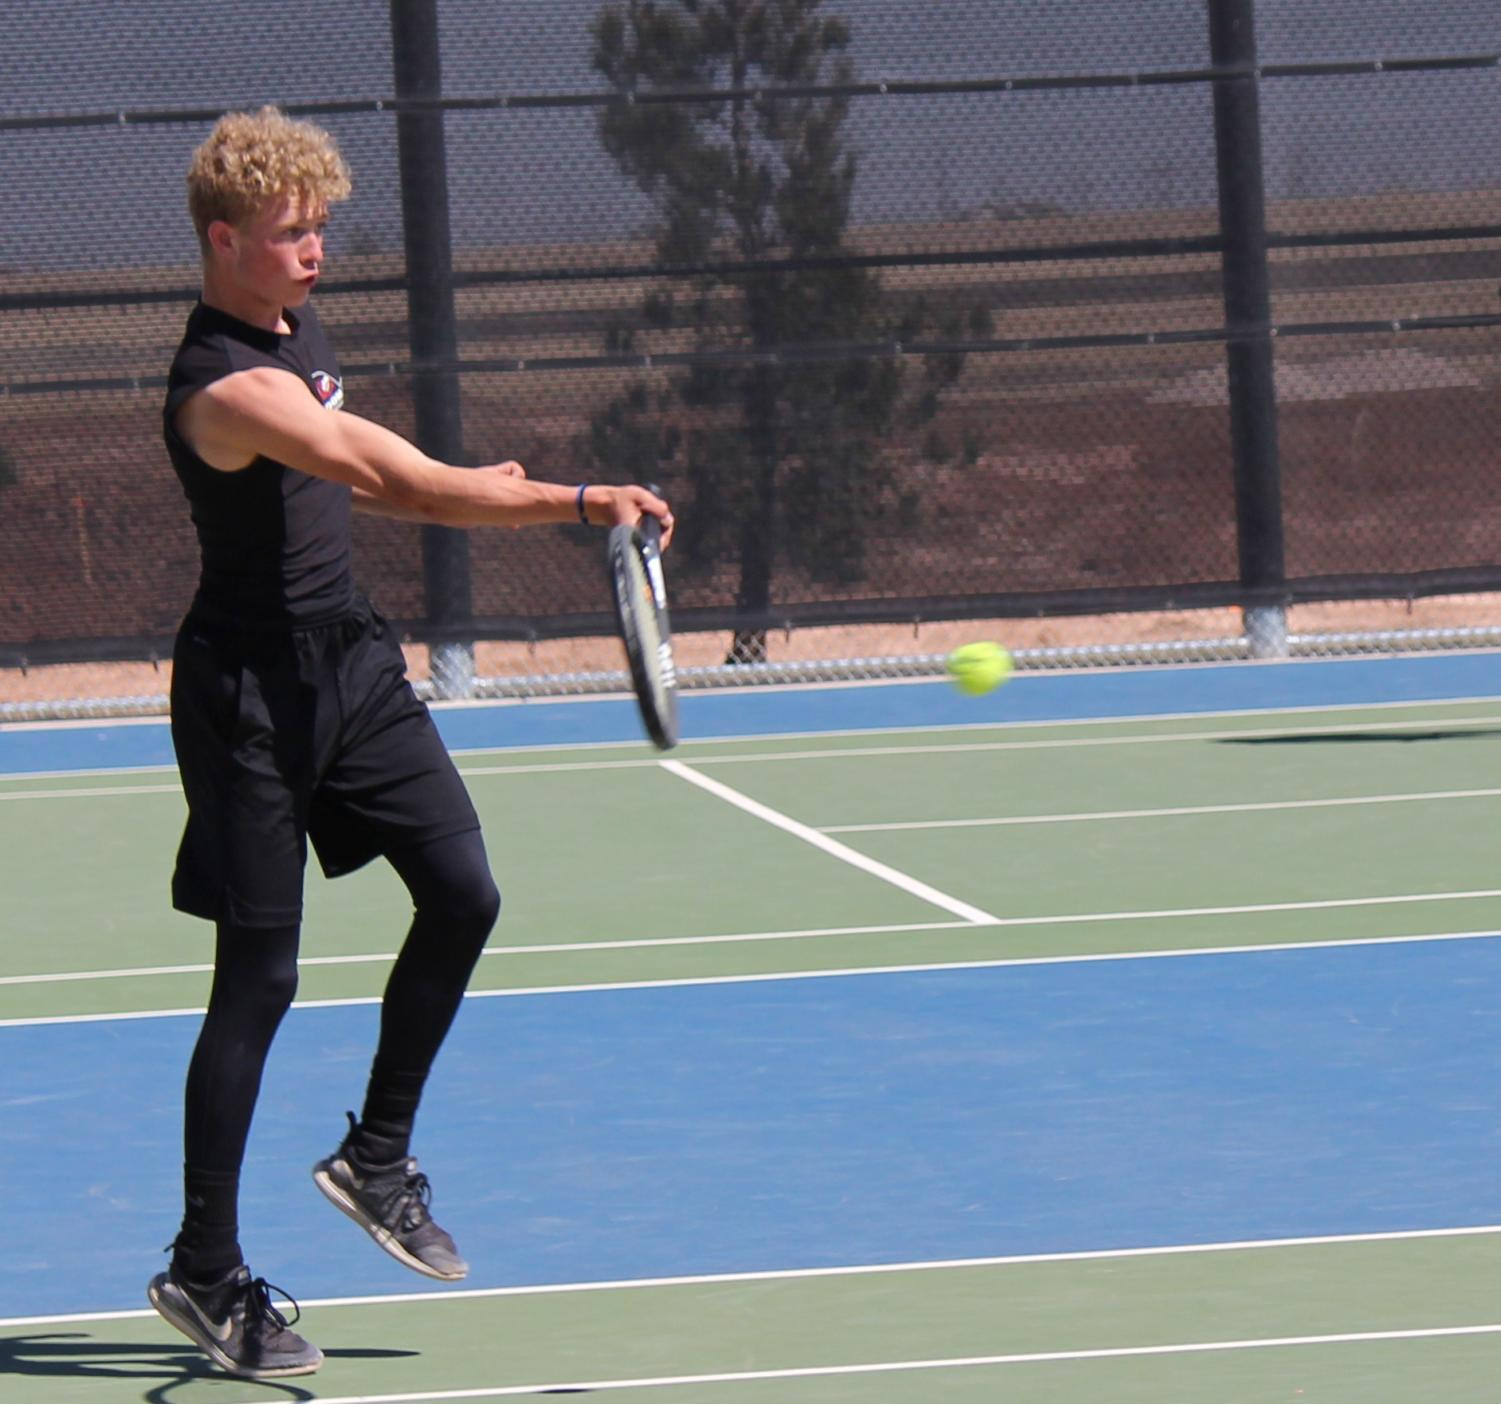 Junior Corbin Ruthardt  competes in the district tennis meet at Randall High School in Amarillo. Ruthardt is one of the four athletes that made it to the Regional tennis meet in Levelland.  Ruthardt's first match started at 9 a.m.  If the athletes win today, they will continue play tomorrow.